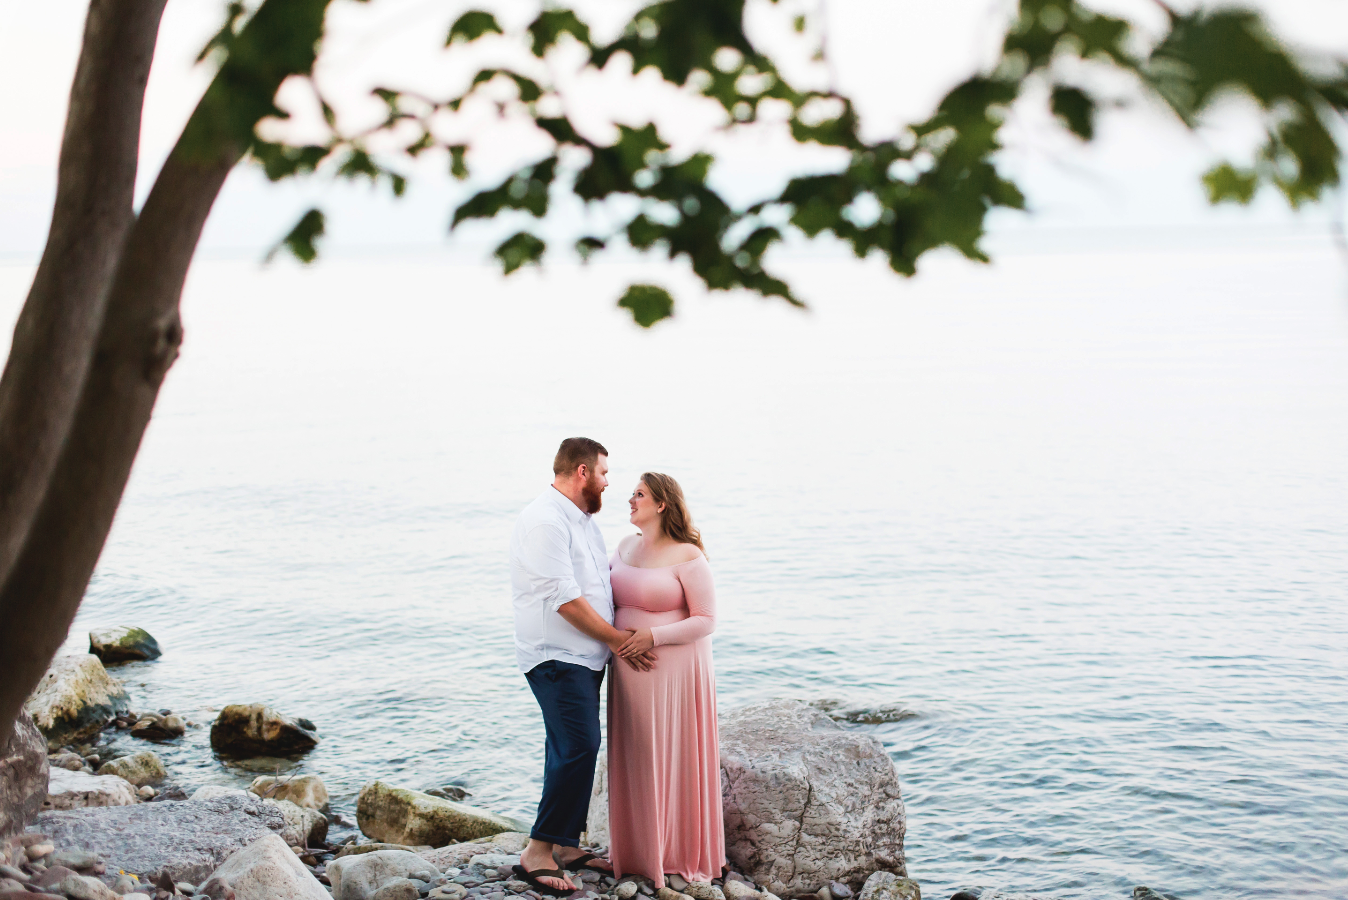 Maternity-Session-Photographer-Hamilton-Oakville-Waterfront-Golden-Hour-Glow-Photography-Moments-by-Lauren-Photo-Image-18.png